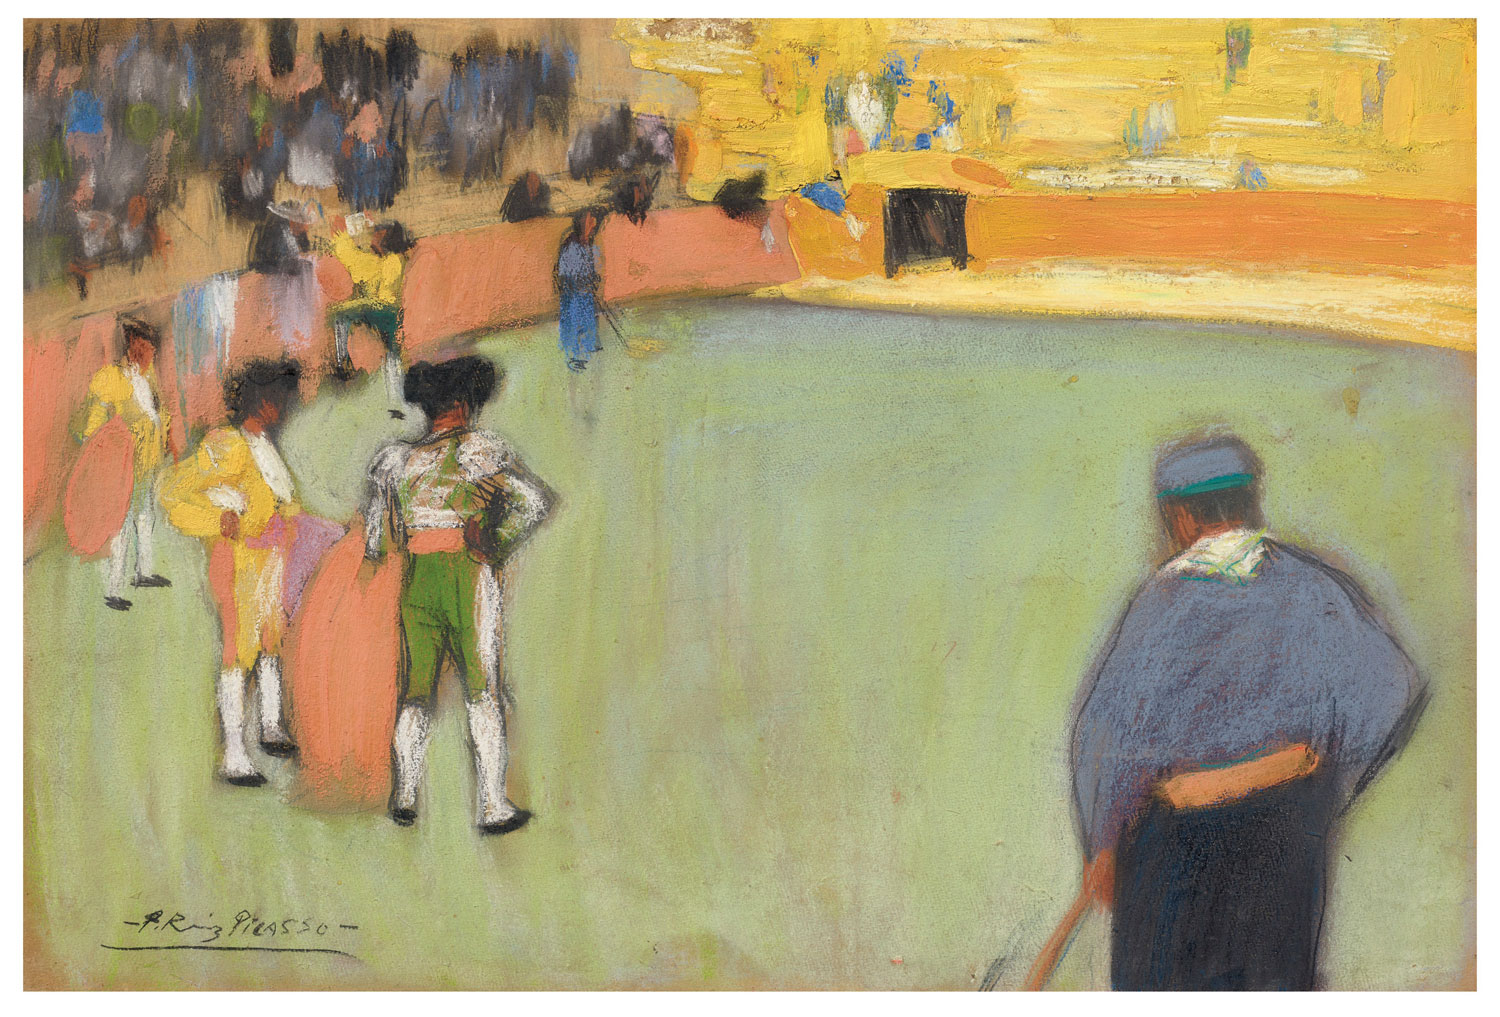 Pablo Picasso (1881-1973), Course de taureaux, 1900. Gouache and pastel on board. 18 ½ x 27 ½ in. (47.1 x 70 cm.). Estimate $3,500,000-5,500,000. This work is offered in the Impressionist & Modern Art Evening Sale on 13 May at Christie's in New York. The Collection of Drue Heinz